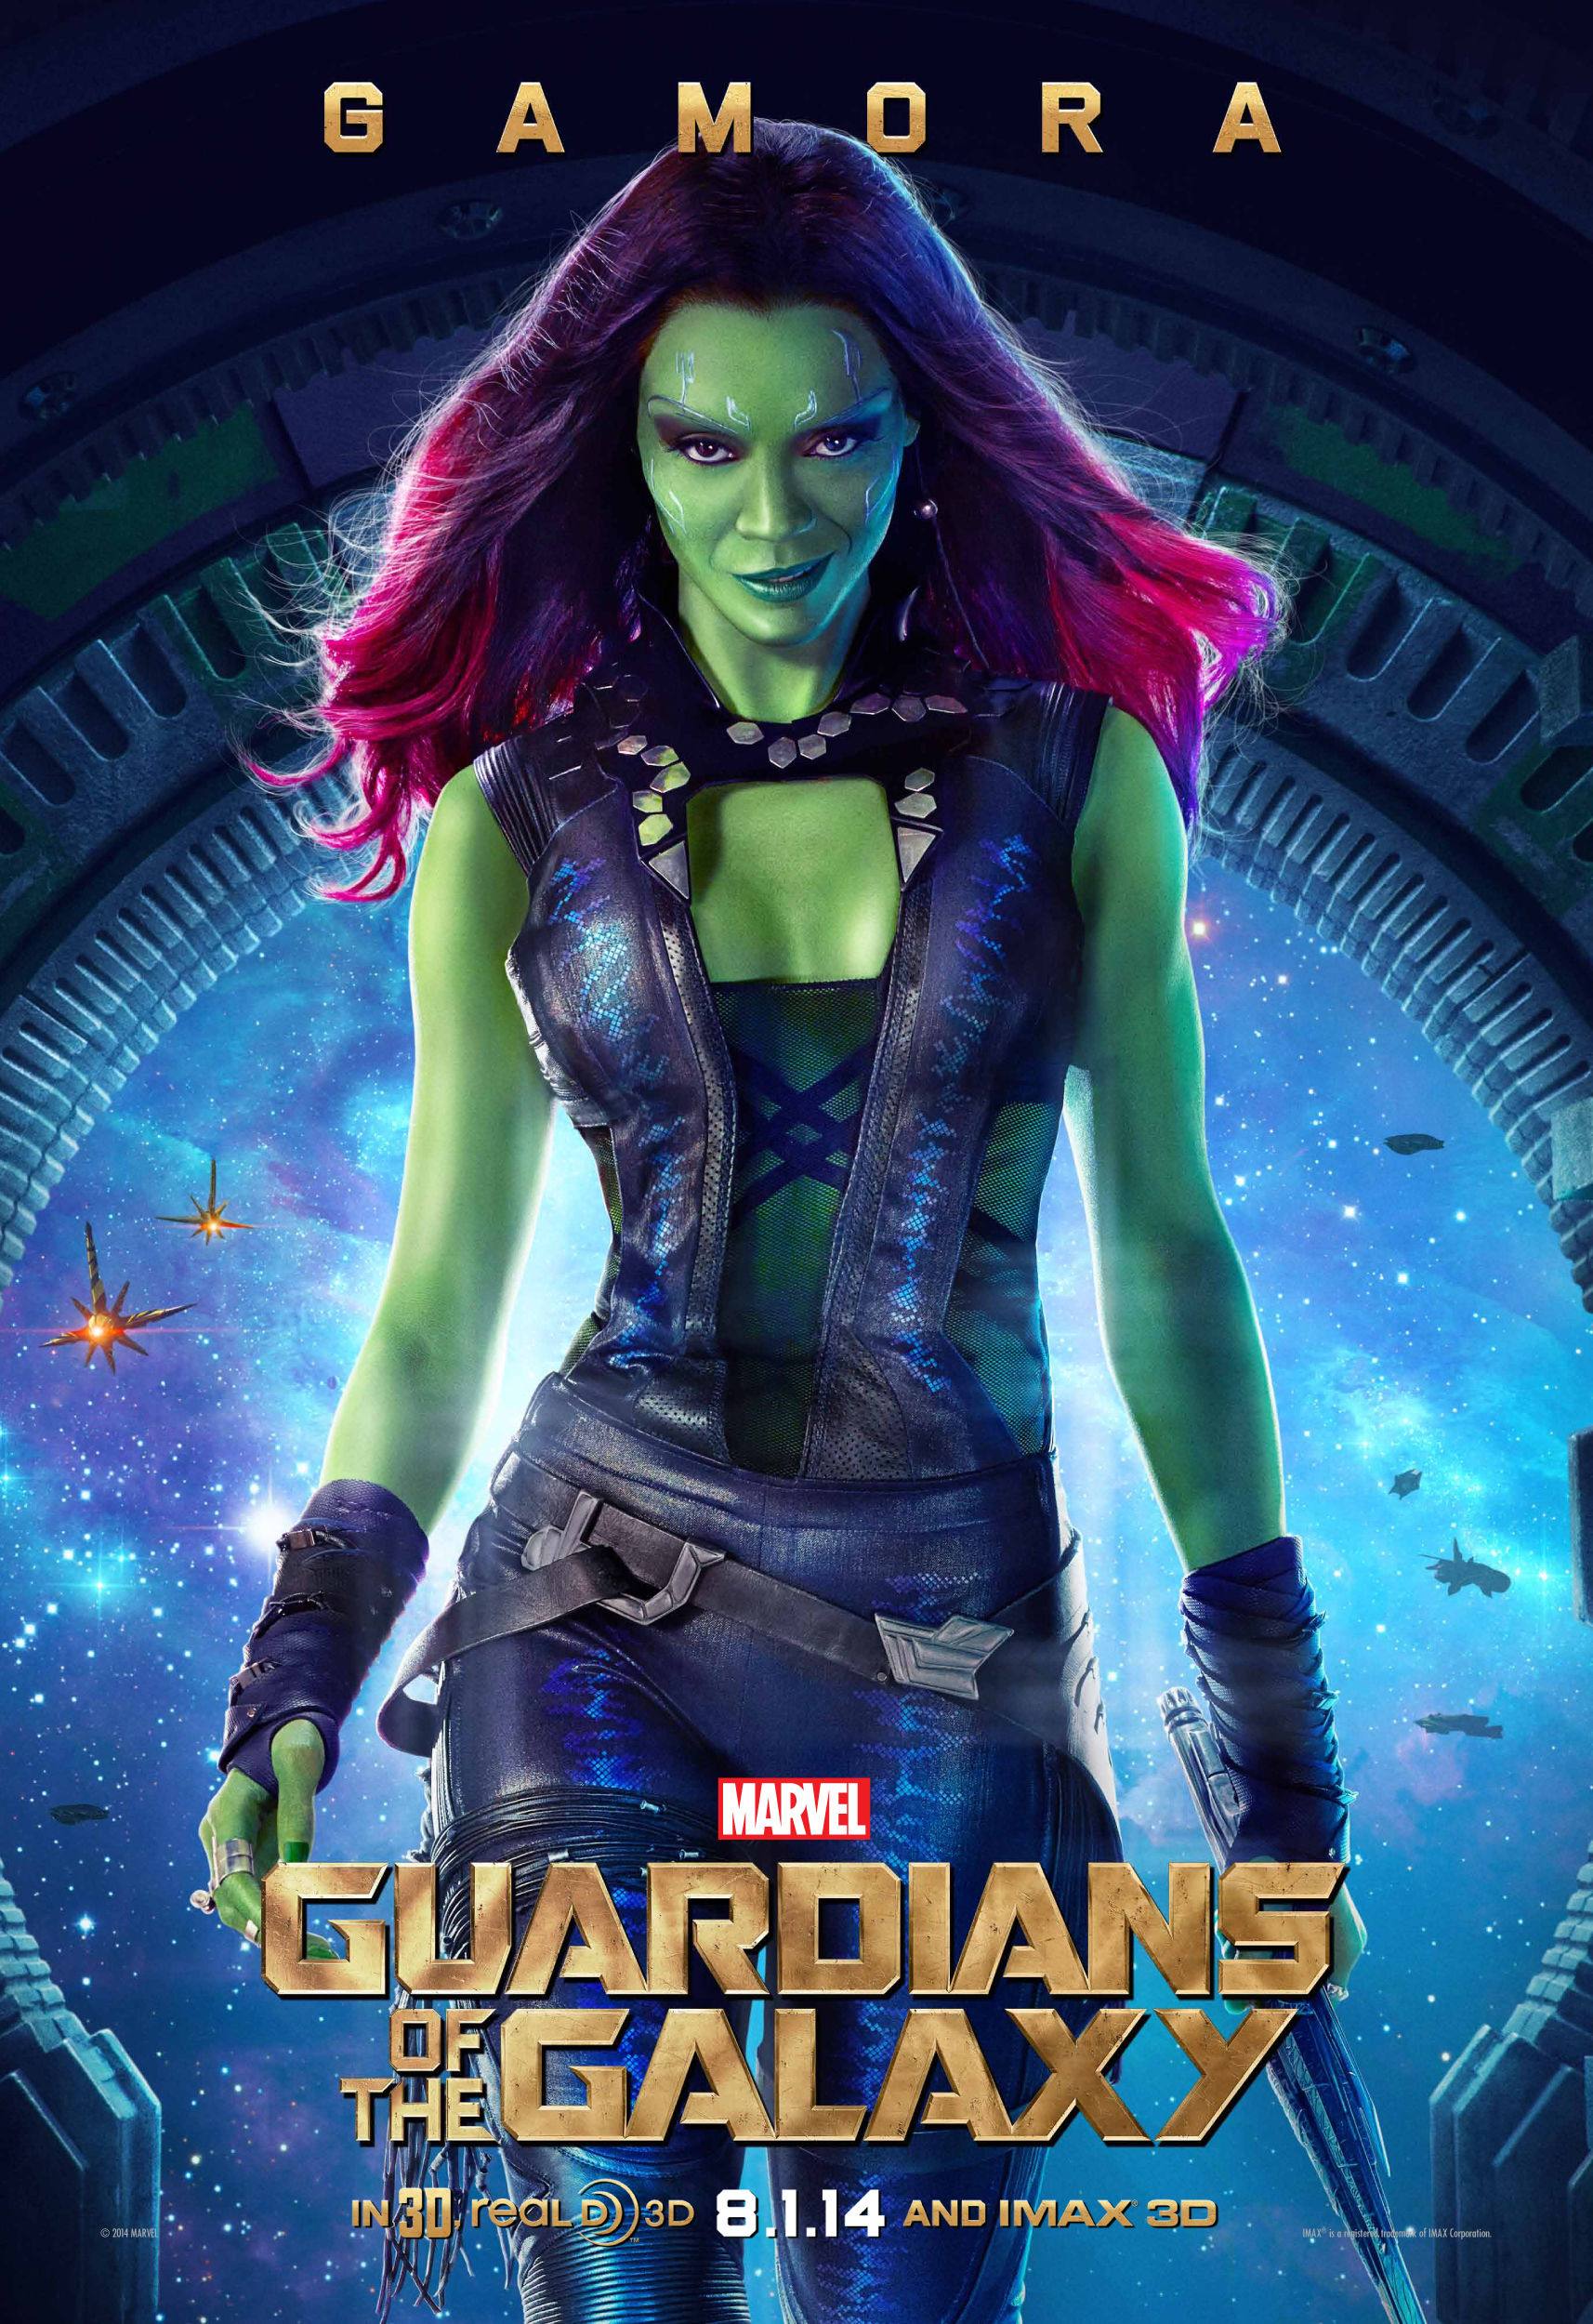 Get to Know Gamora In New Guardians of the Galaxy Featurette Get to Know Gamora In New Guardians of the Galaxy Featurette